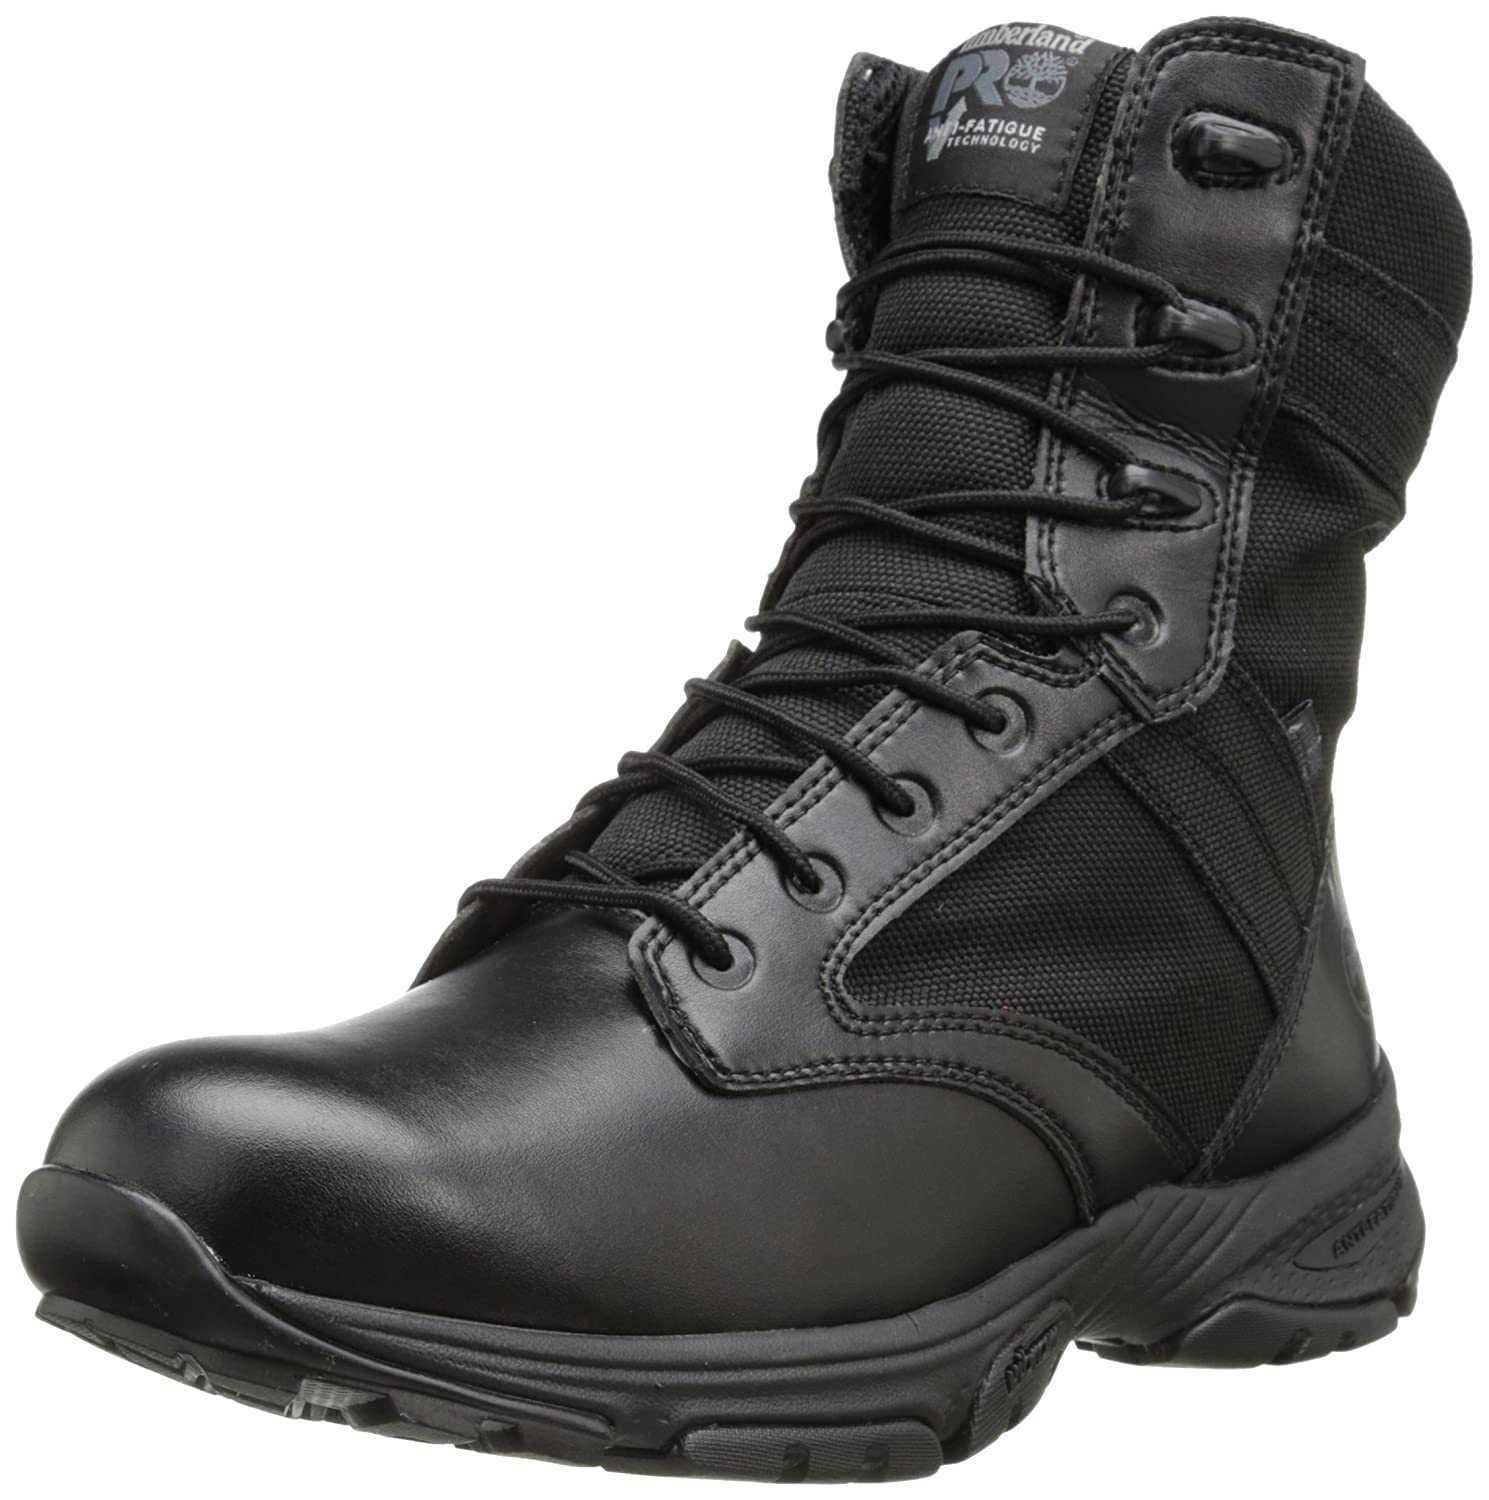 Timberland PRO メンズ Black Smooth With Textile 13 2E US  B00HMY5ESK